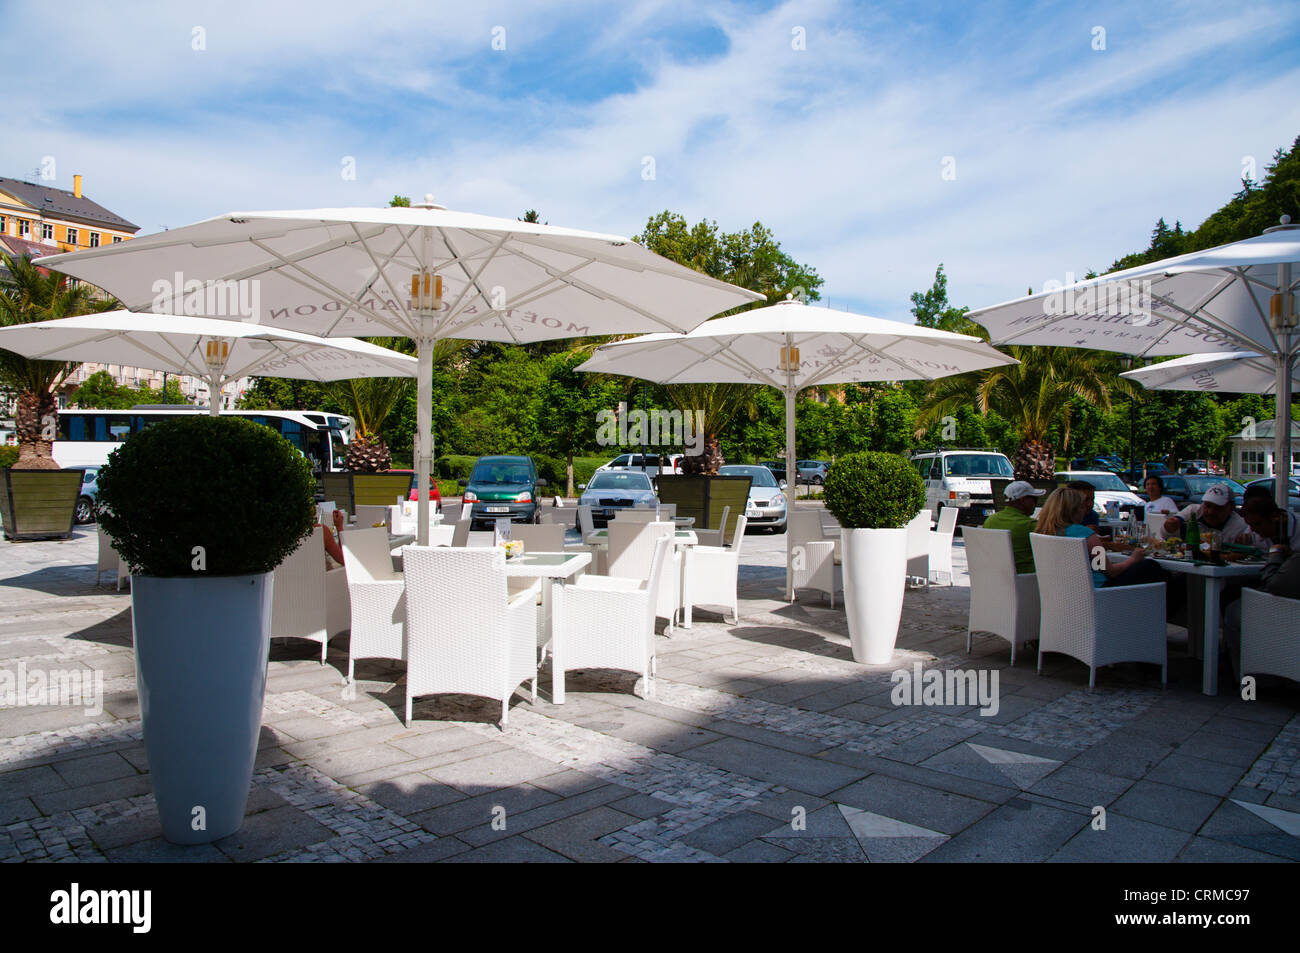 Grand Hotel Pupp cafe terrace Karlovy Vary spa town Czech Republic Europe - Stock Image